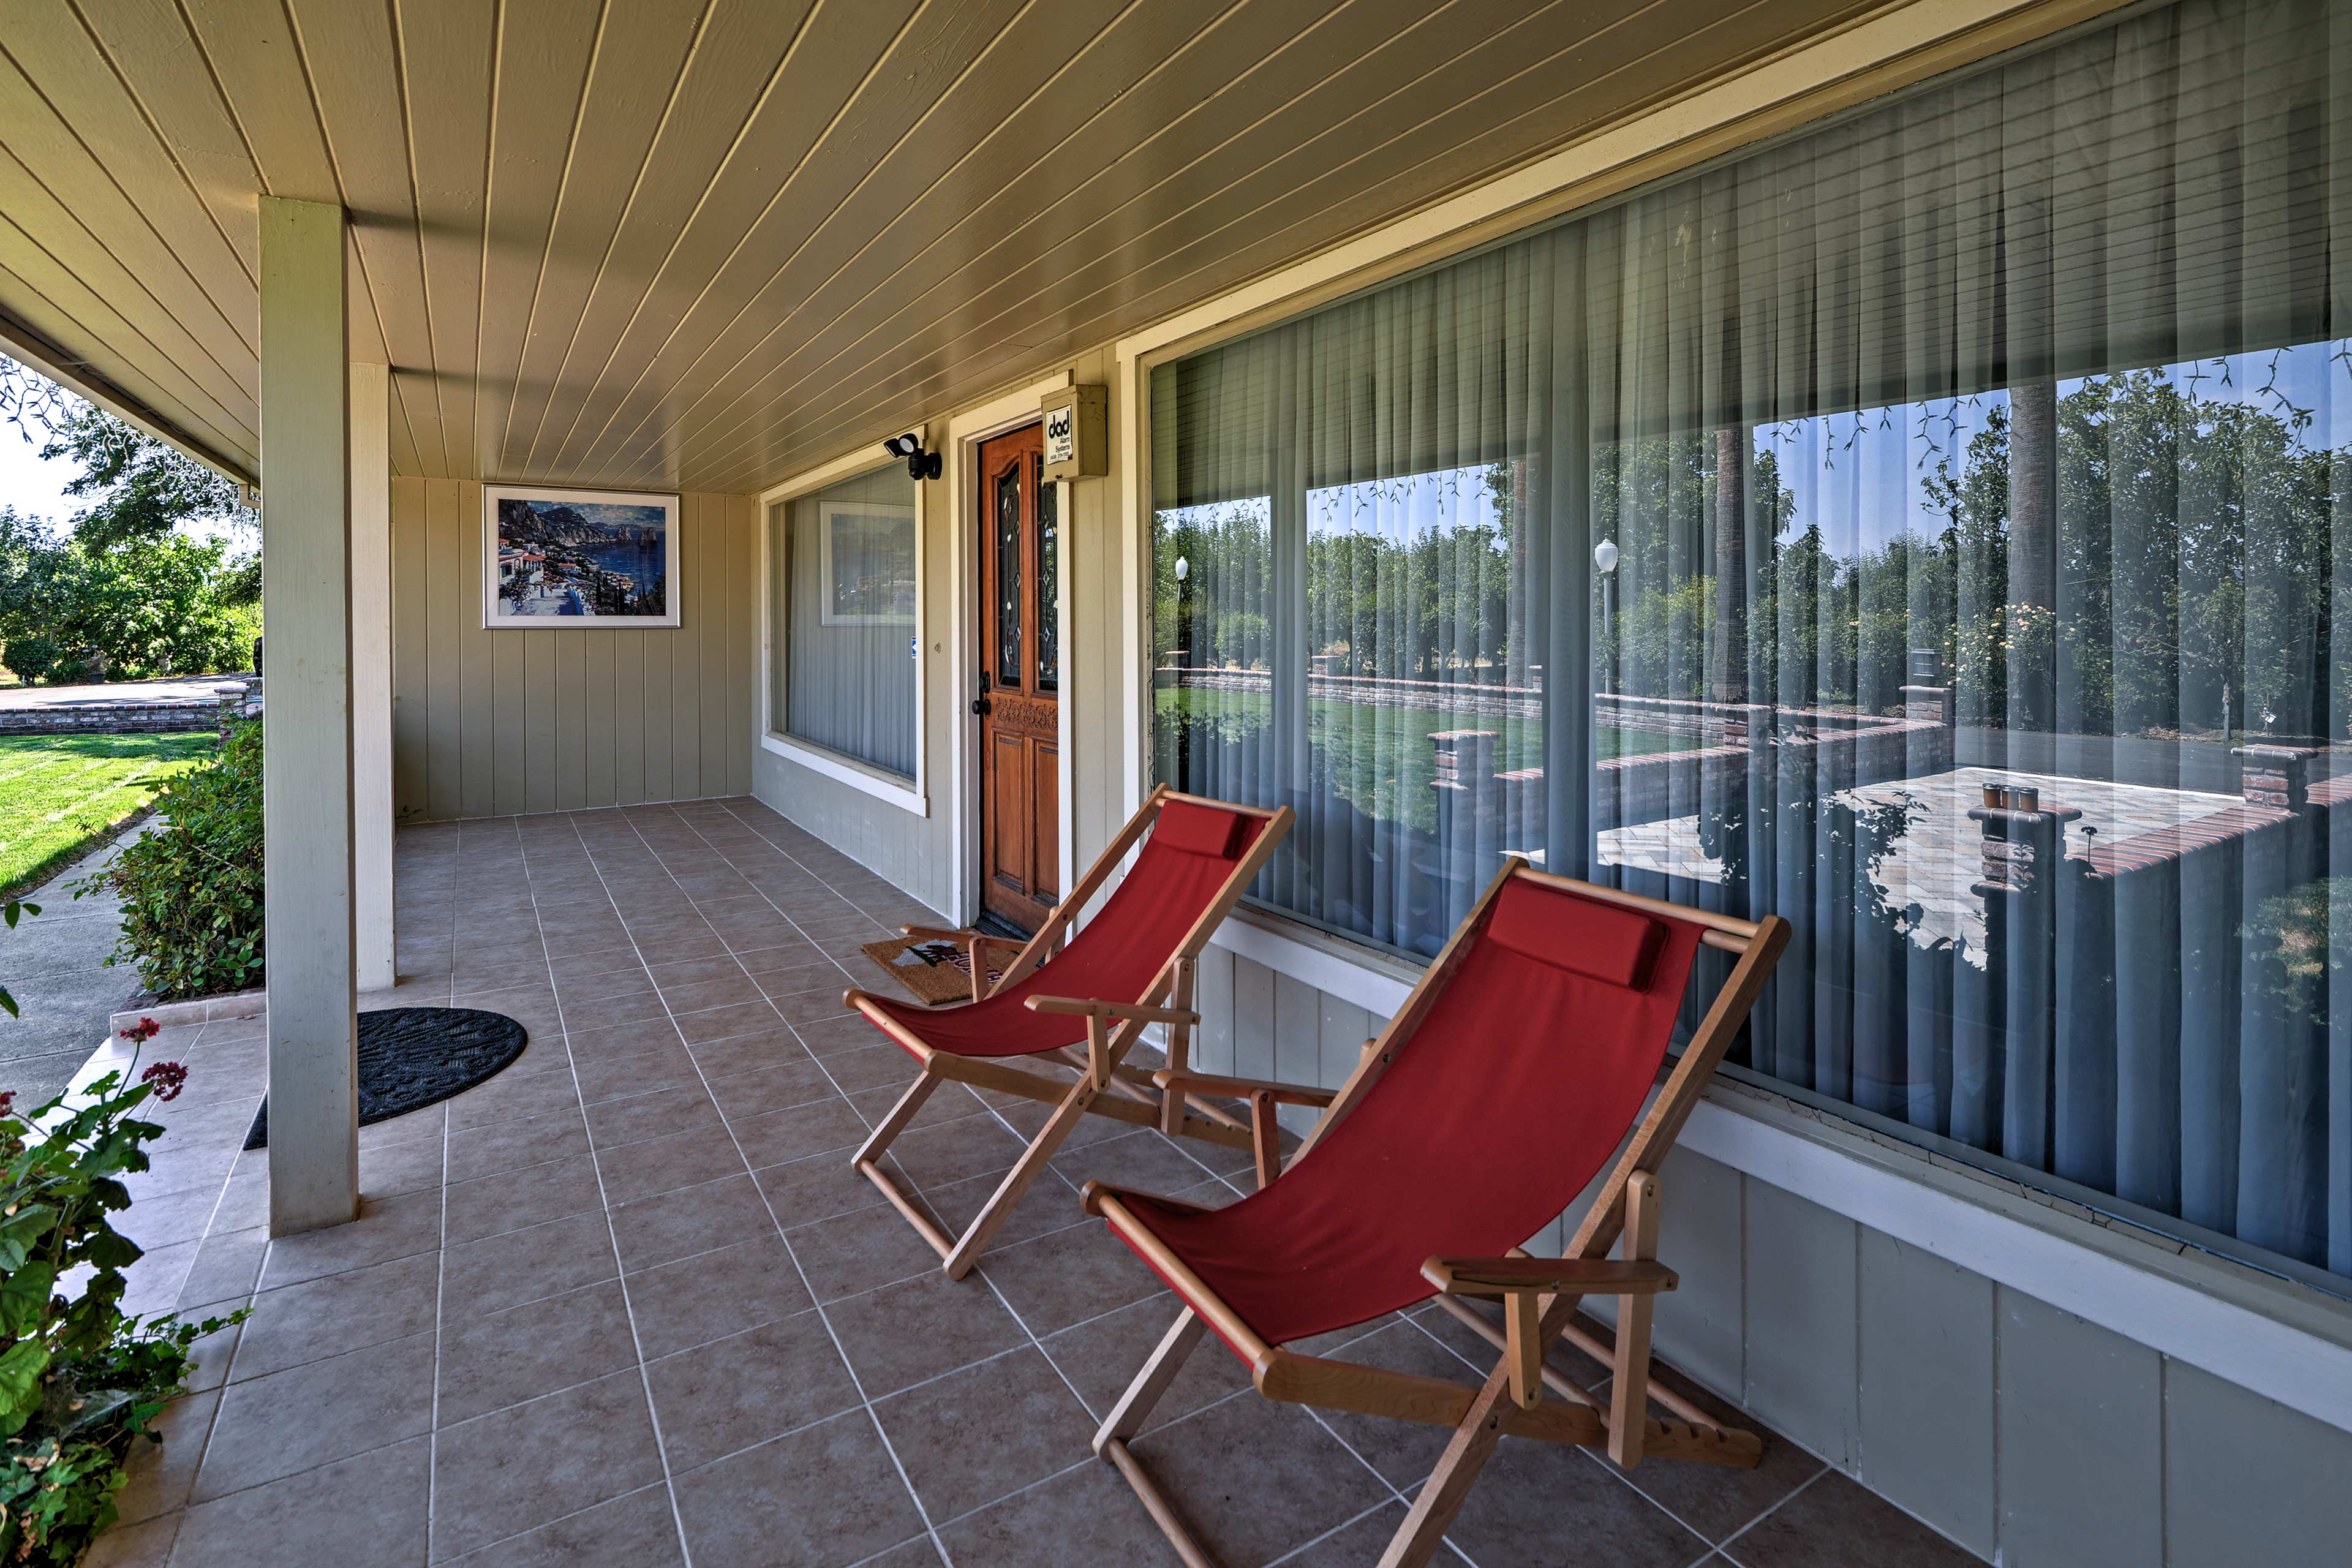 Sip your morning coffee on the front porch looking out at the palm trees.